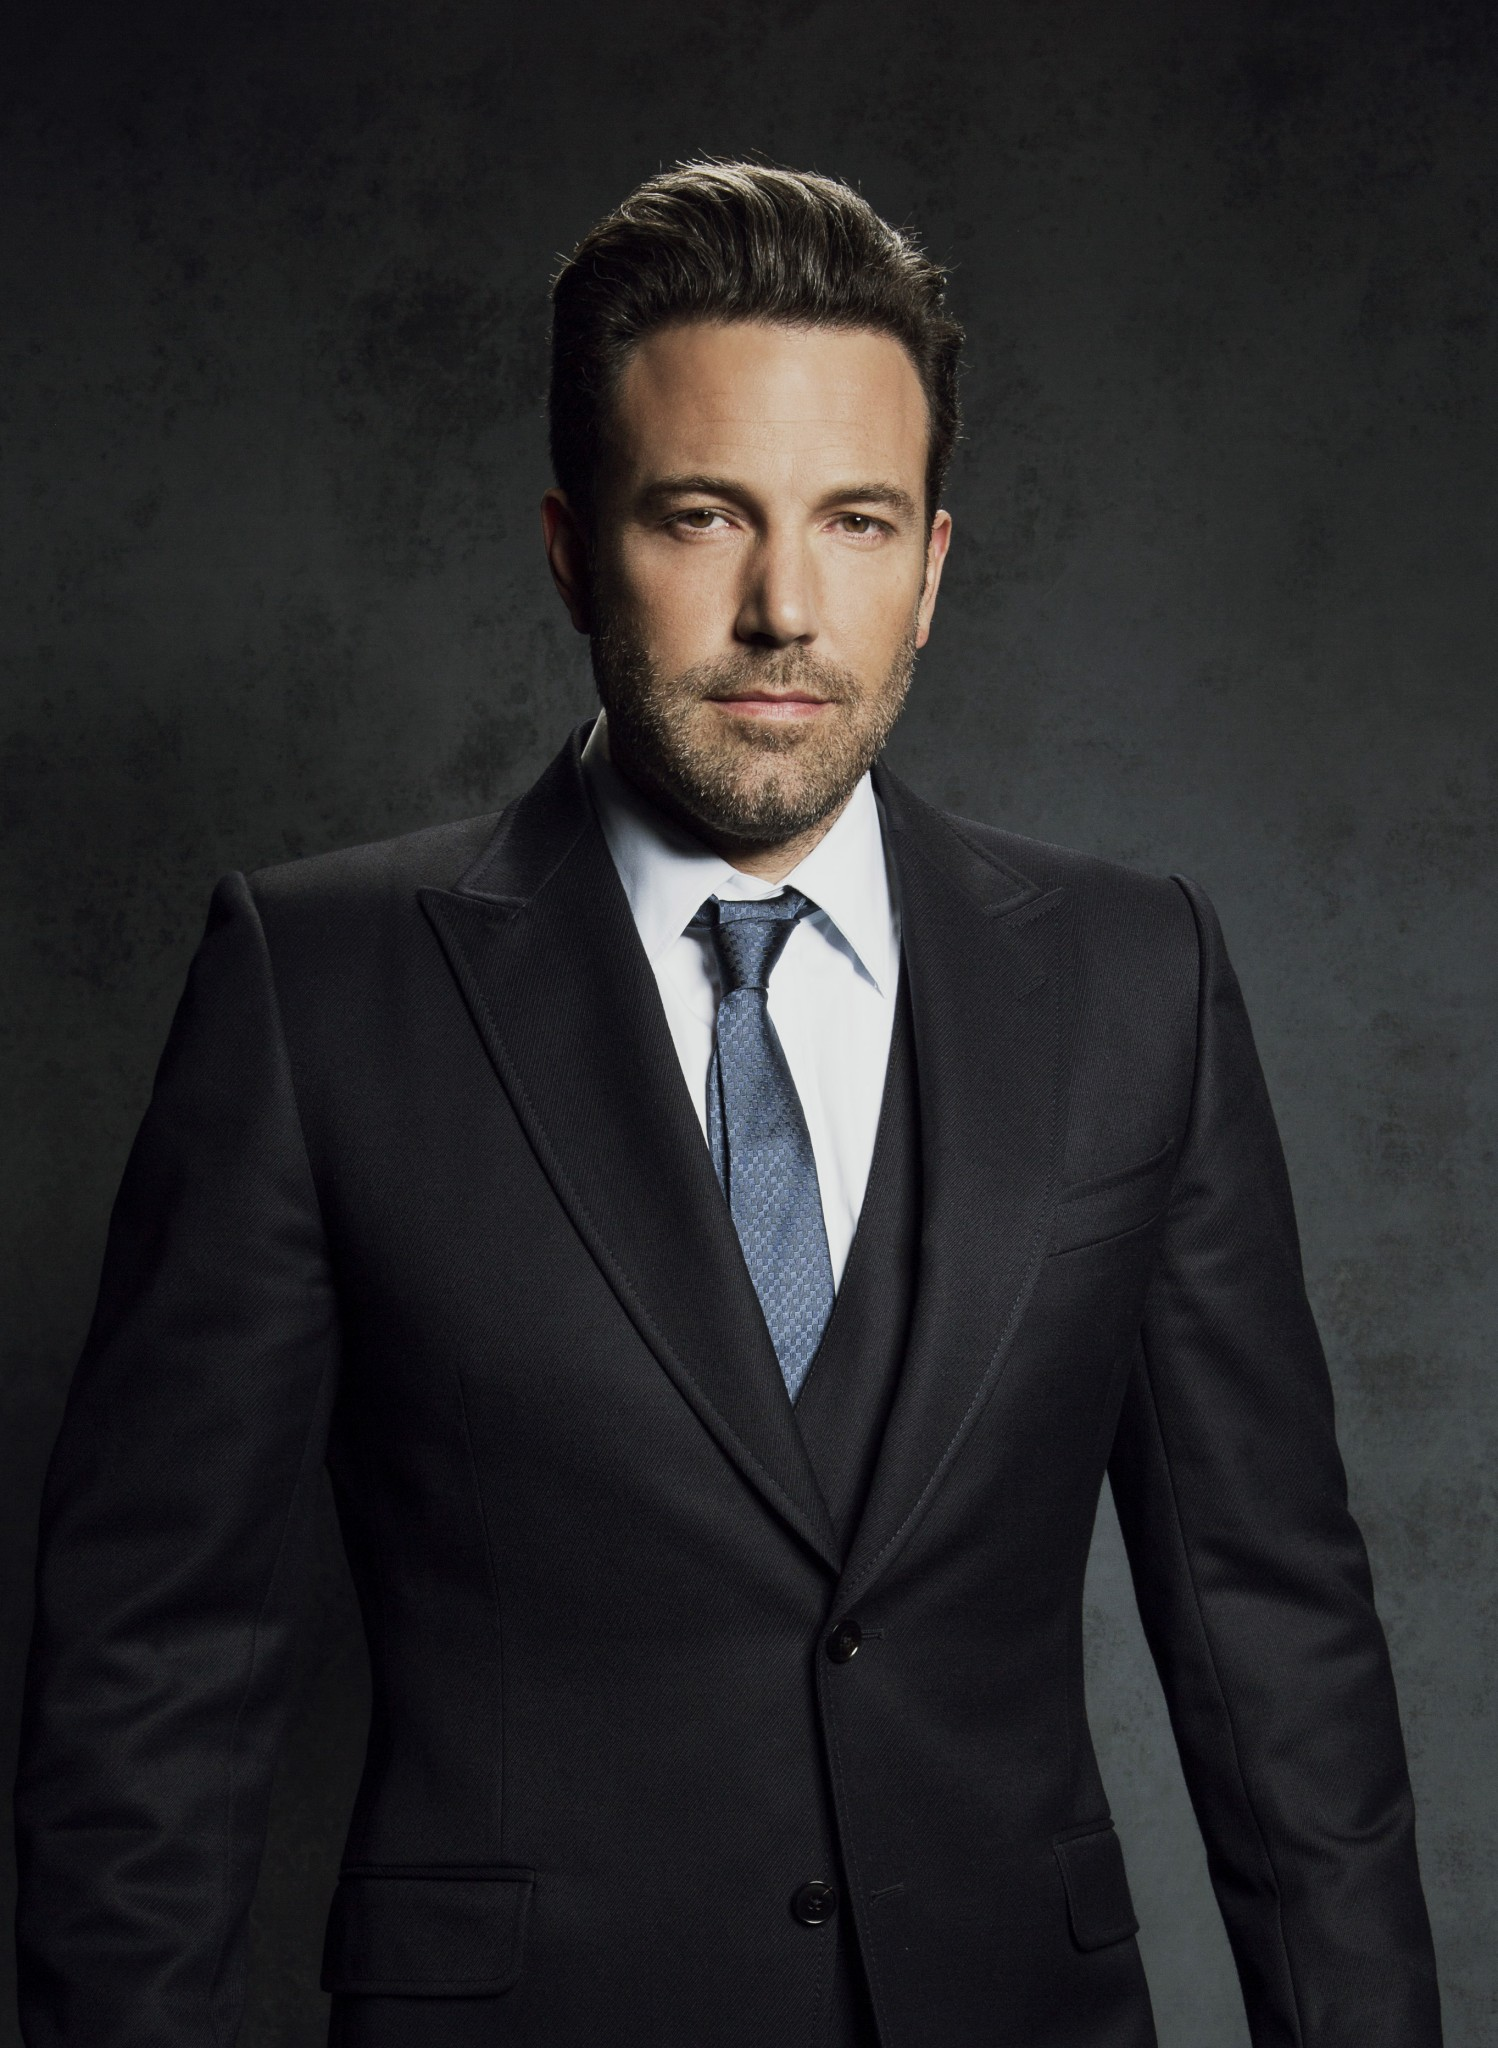 Ben Affleck is currently separated from Jennifer Garner after they married in 2005